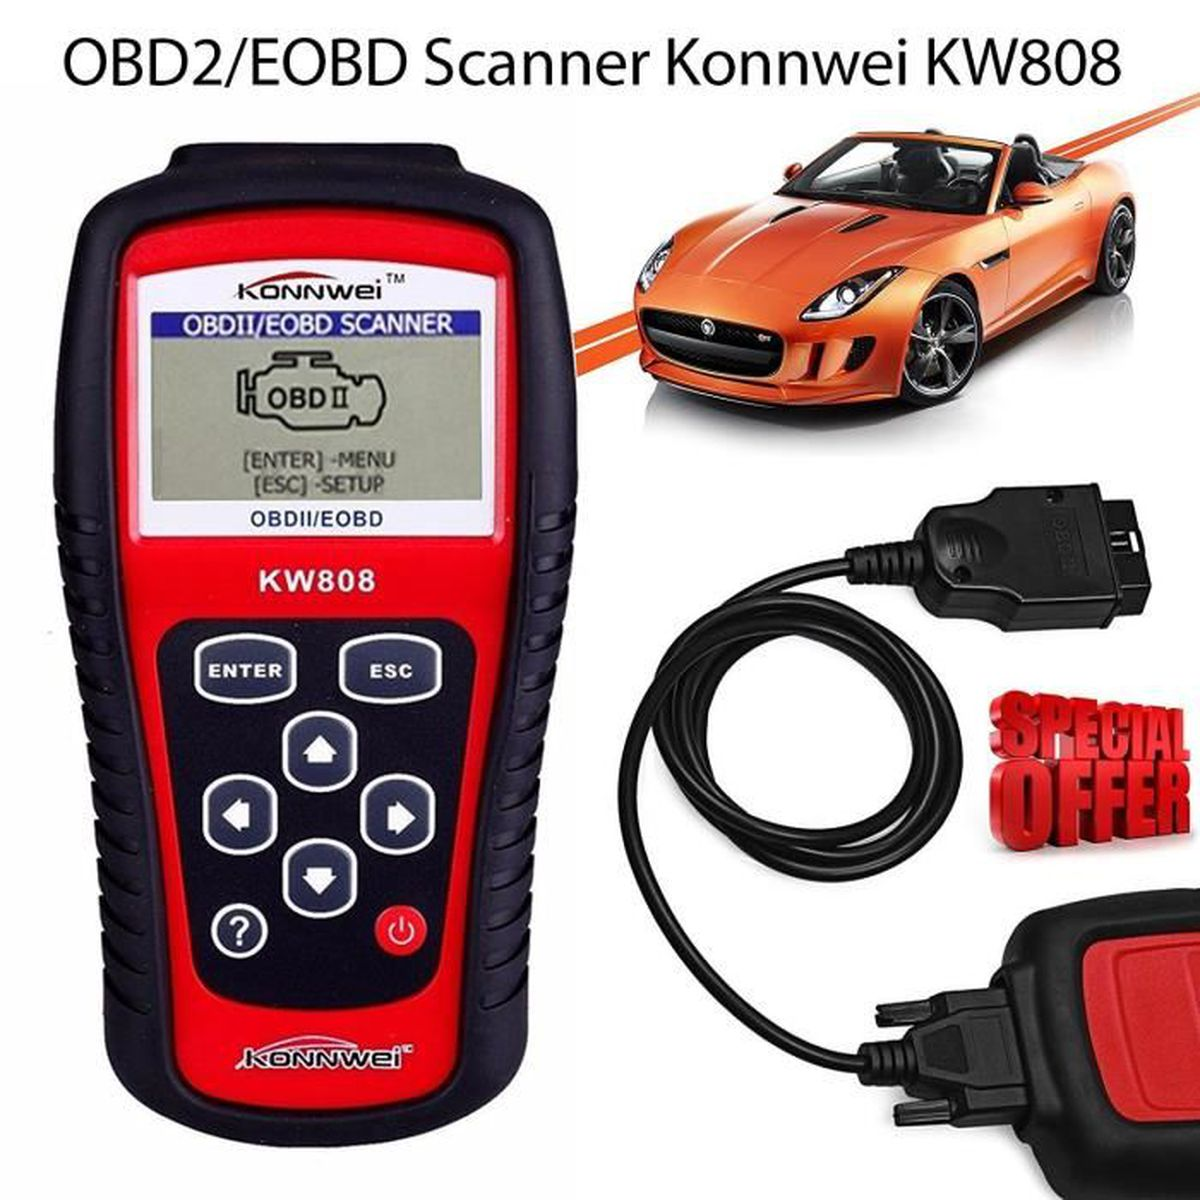 kw808 obdii obd2 appareil de diagnostic de voiture avec scanner et lecteur de codes achat. Black Bedroom Furniture Sets. Home Design Ideas